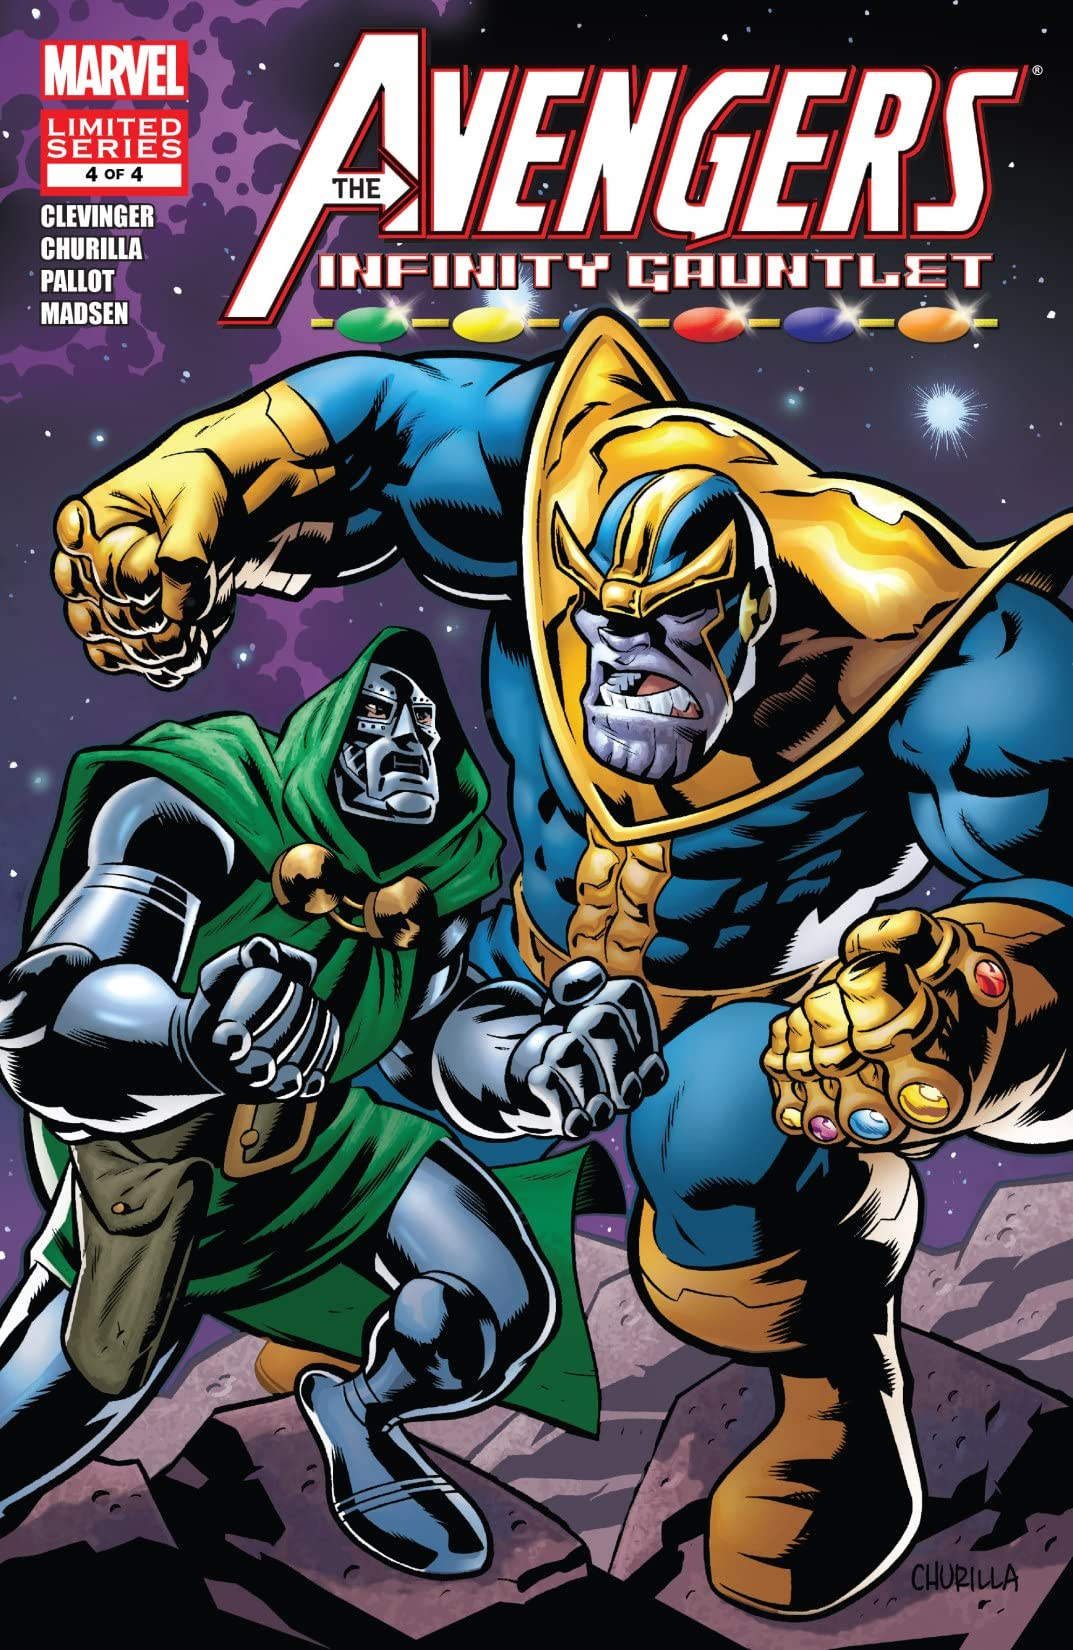 Avengers & The Infinity Gauntlet (2010) #4 (of 4)